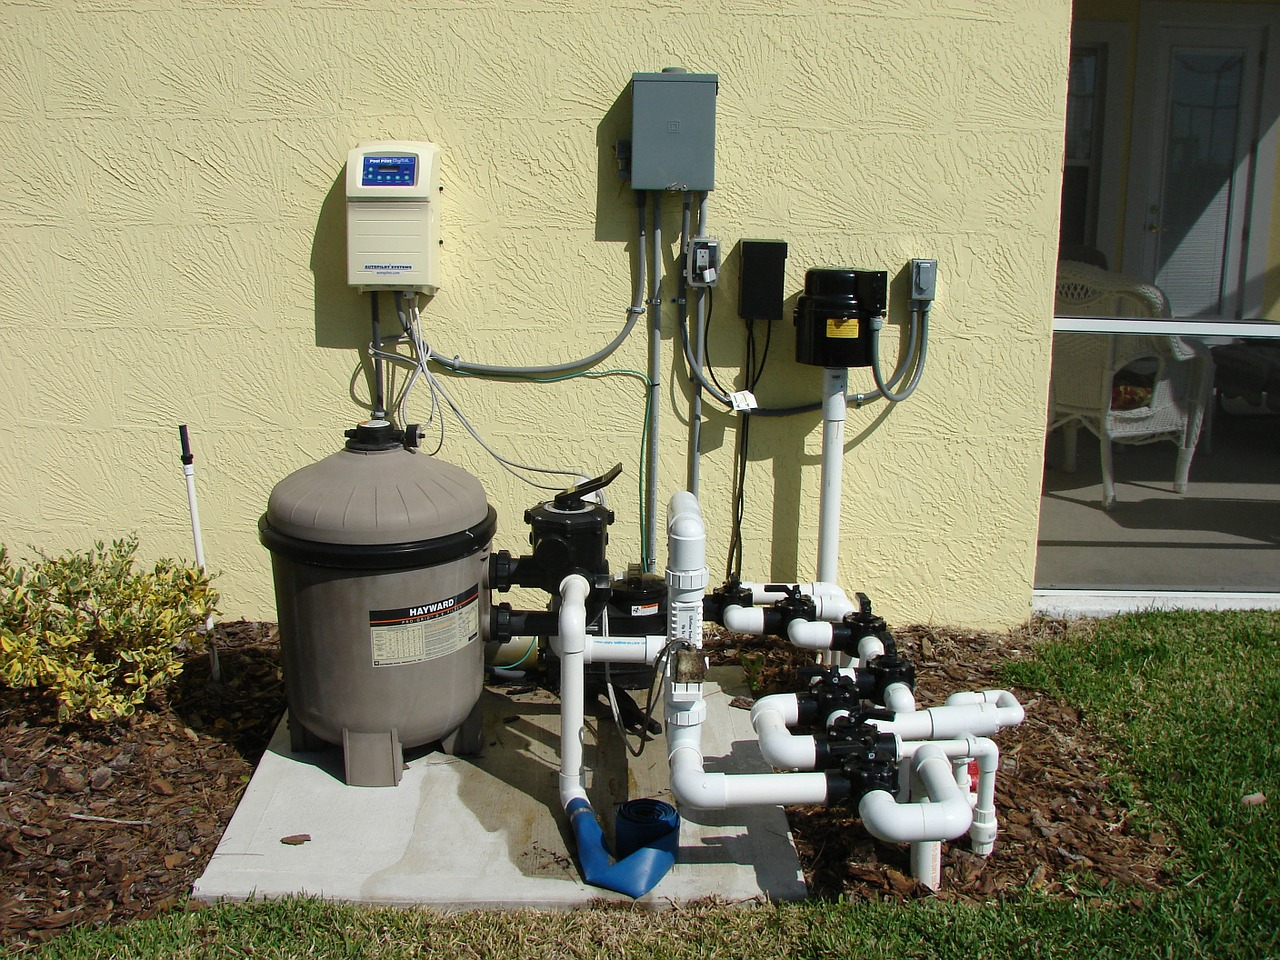 Heat the pool with a heat pump - this is how a pool heat pump works